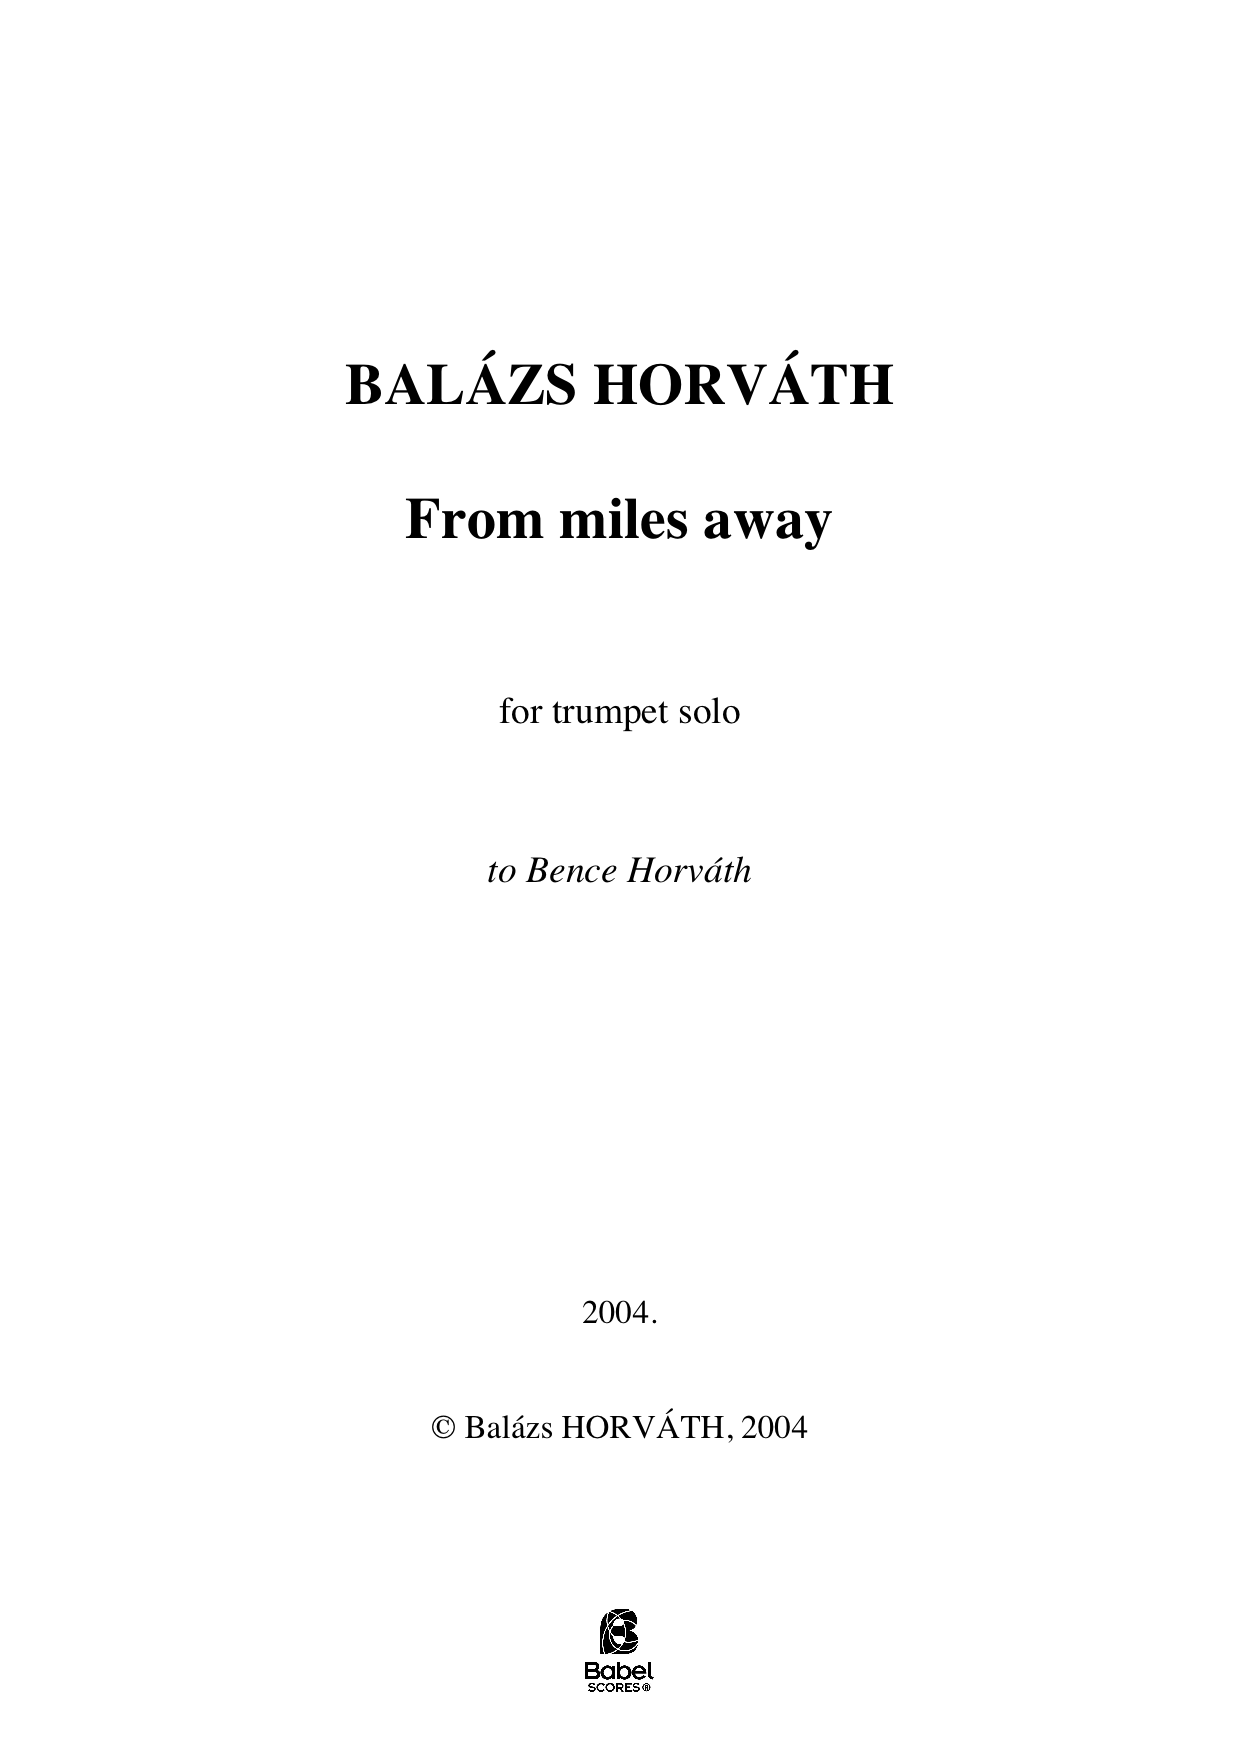 From miles away Balazs HORVATH A4 z 1 577